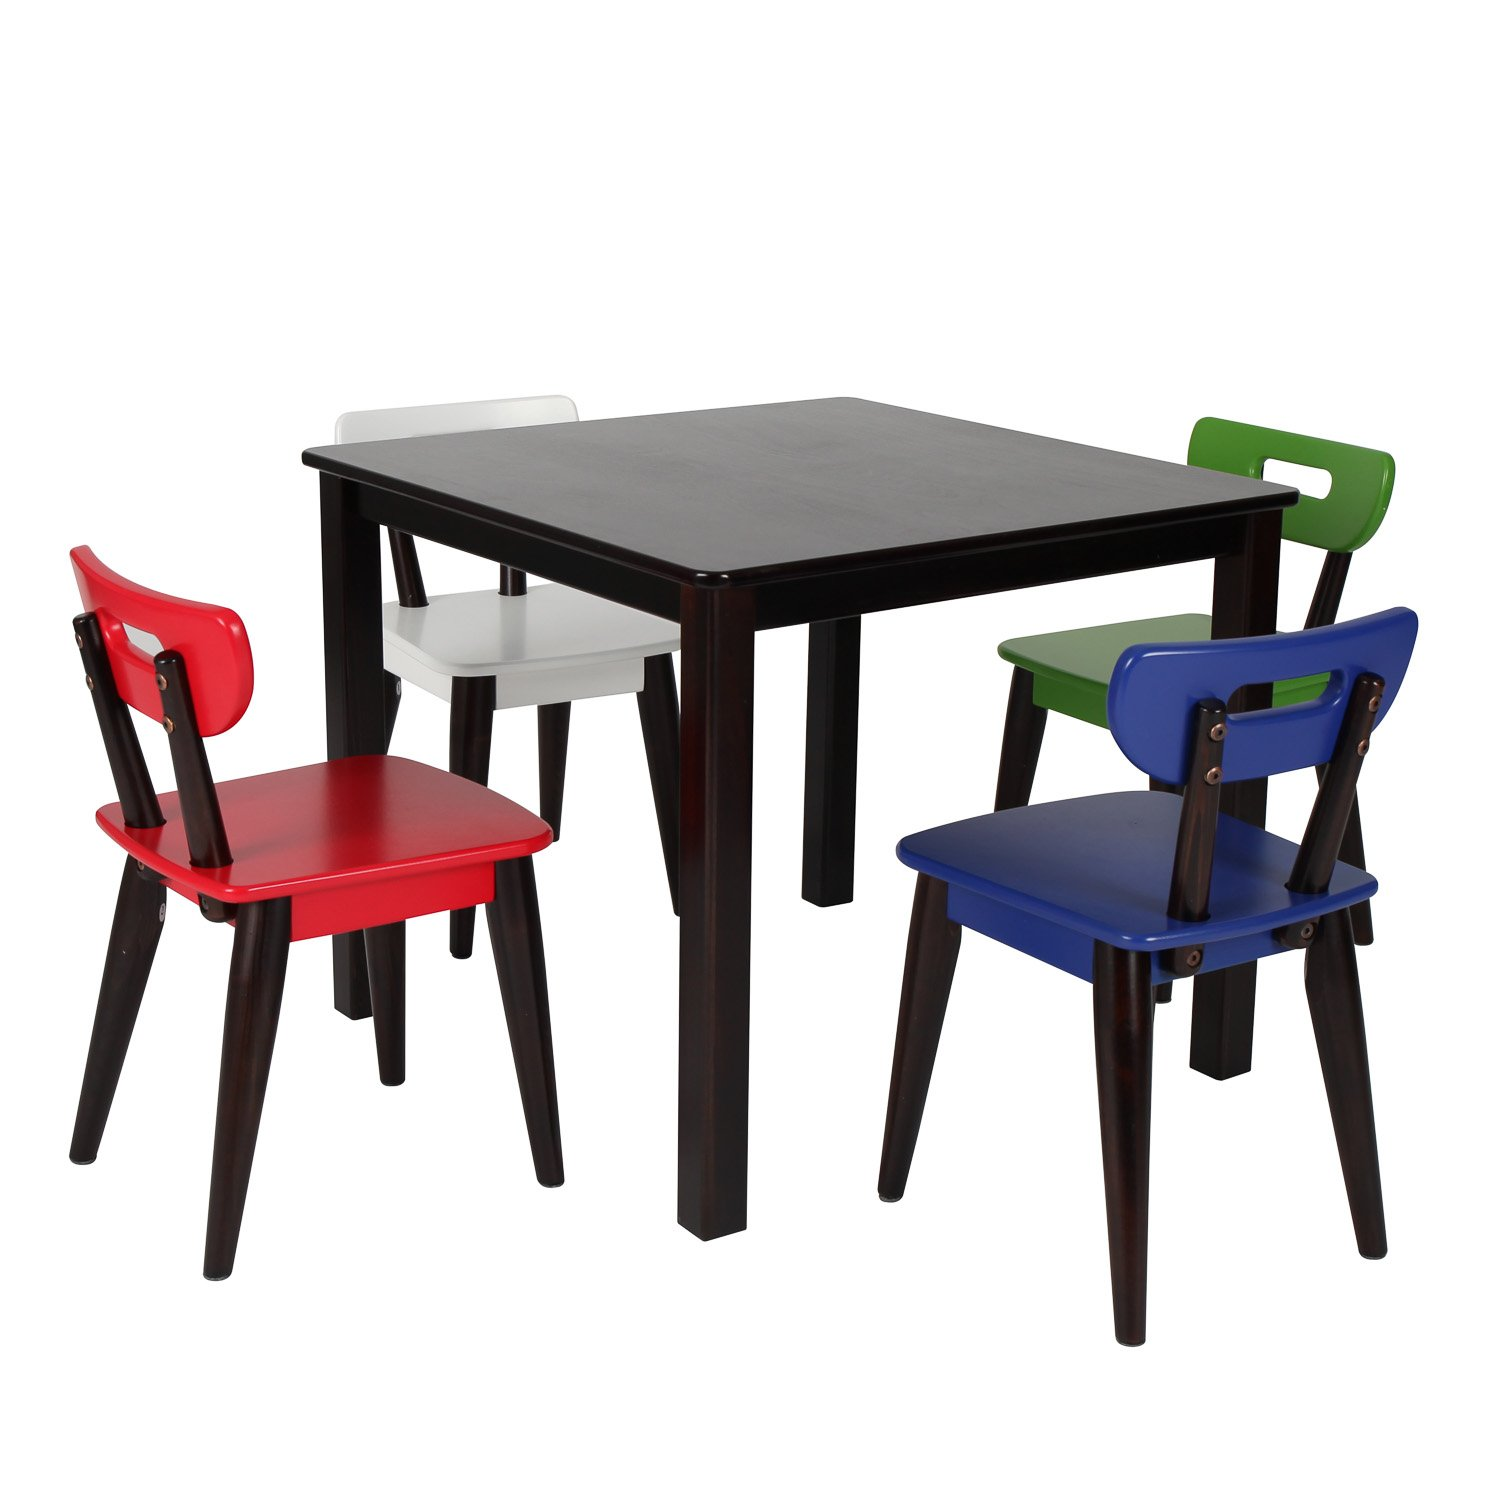 Max & Lily Espresso Wood Kid and Toddler Square Table + Modern Chairs (Blue, Red, Green, White) Maxwood Furniture Inc. 15-4640-005